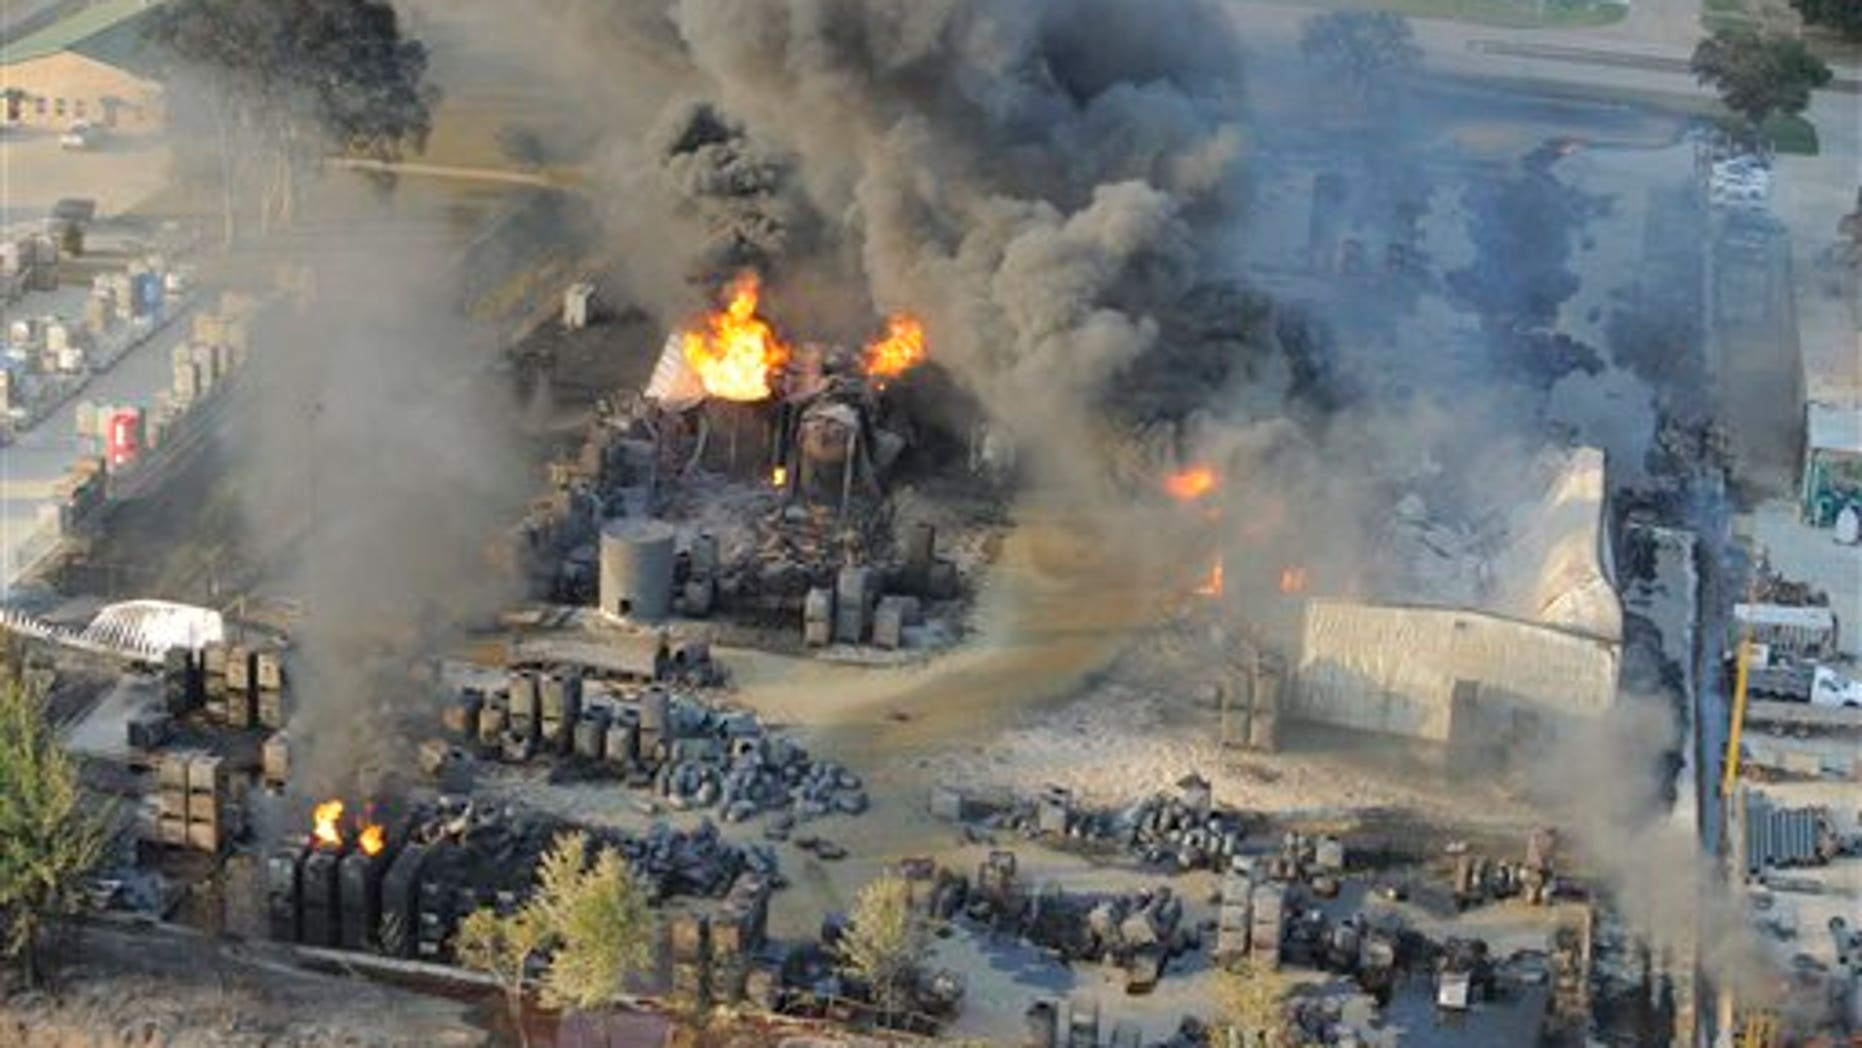 June 14: An aerial view of the fire raging at Multi-Chem Corp. near Acadiana Regional Airport in New Iberia, La.